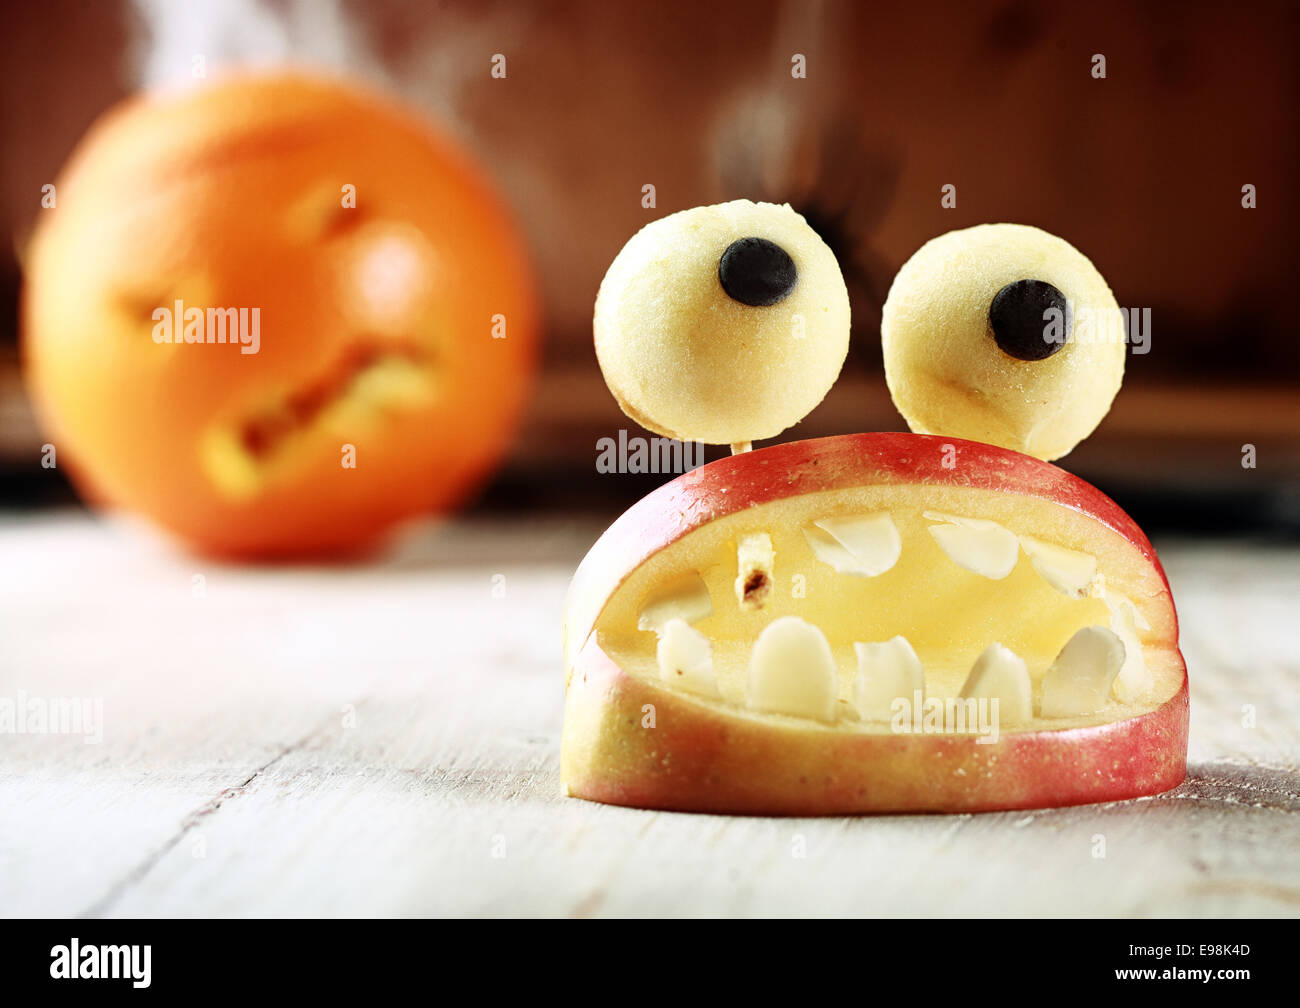 cute homemade halloween apple decoration of an open mouth with teeth topped with googly dough eyes on toothpicks for a scary but healthy favor to give